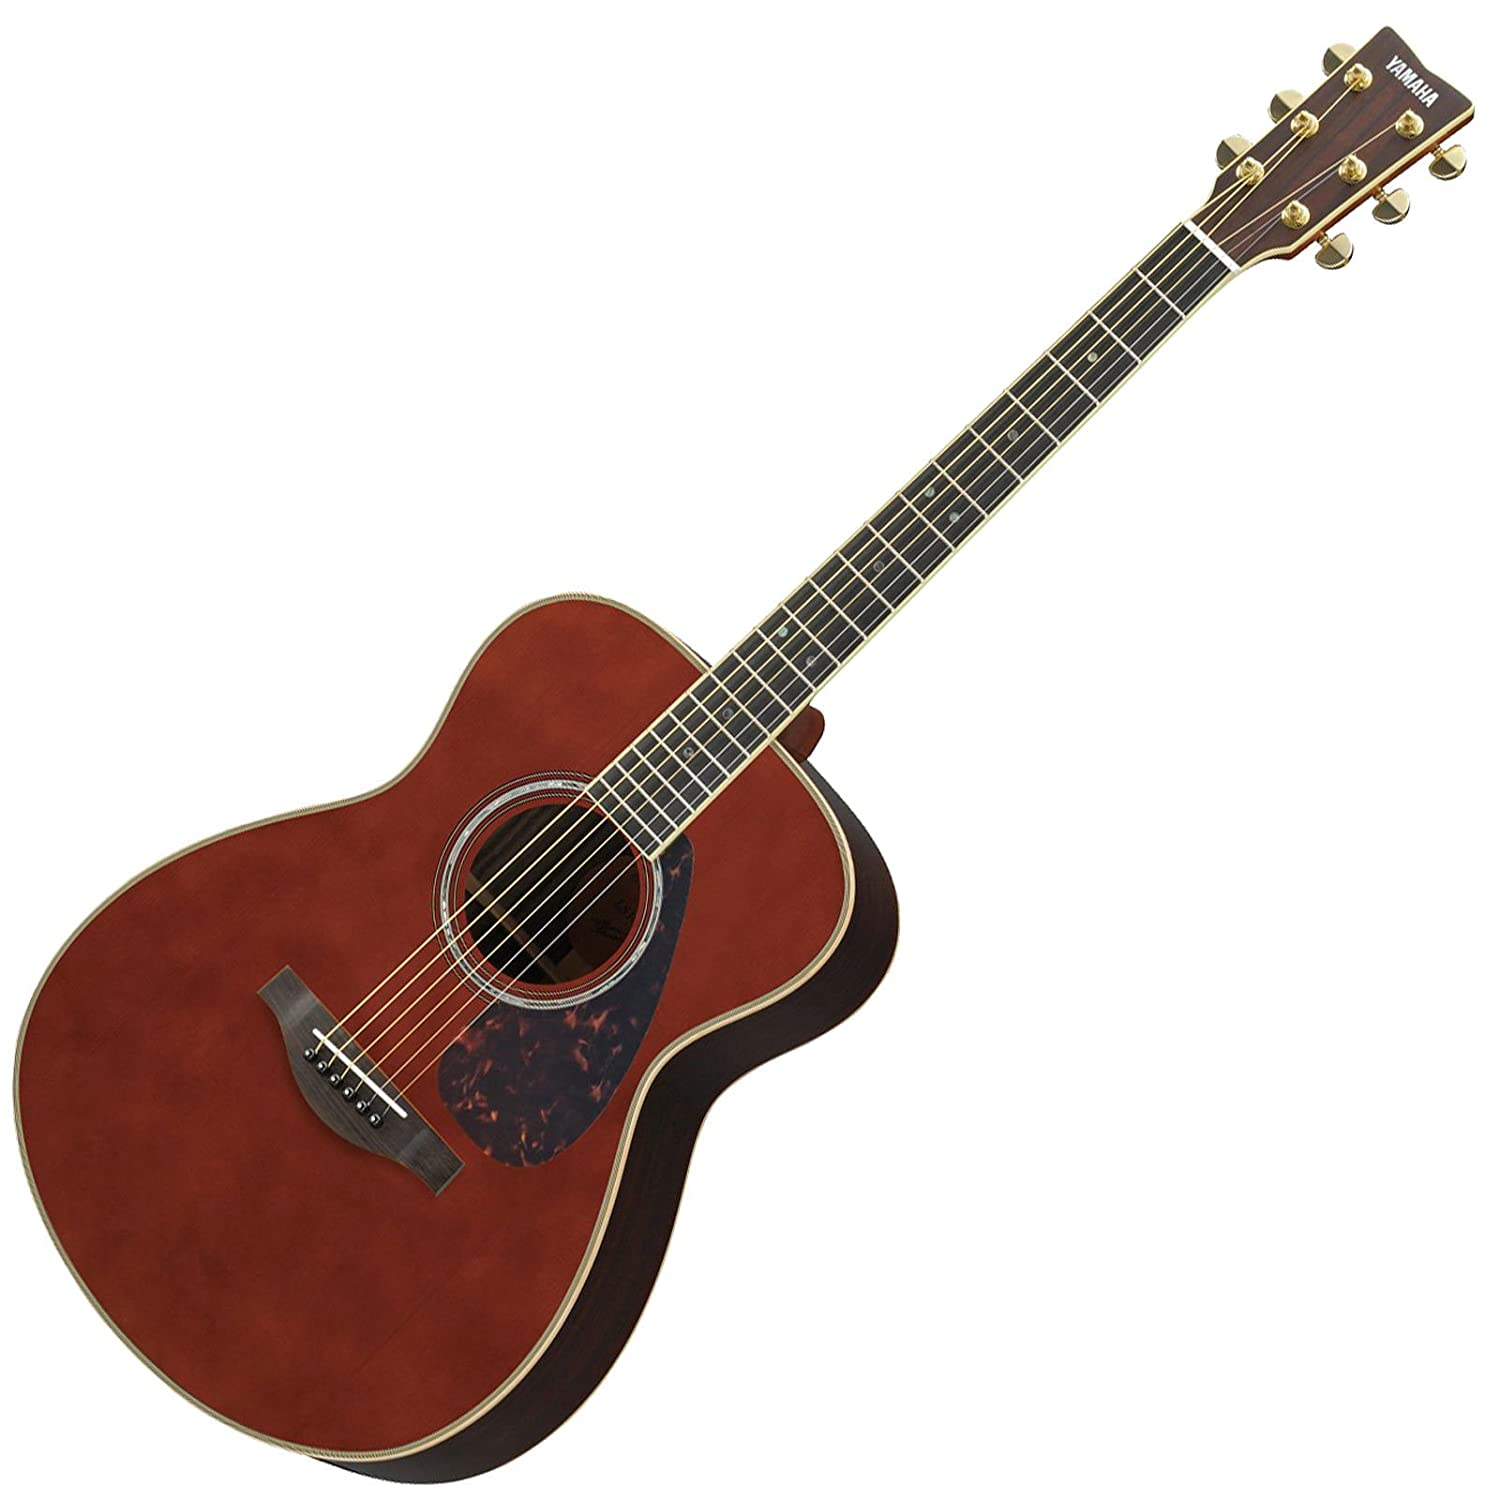 Amazon.com: Yamaha L-Series LS16 LS16 Concert Size Acoustic-Electric Guitar with Gig Bag - Dark Tinted: Musical Instruments